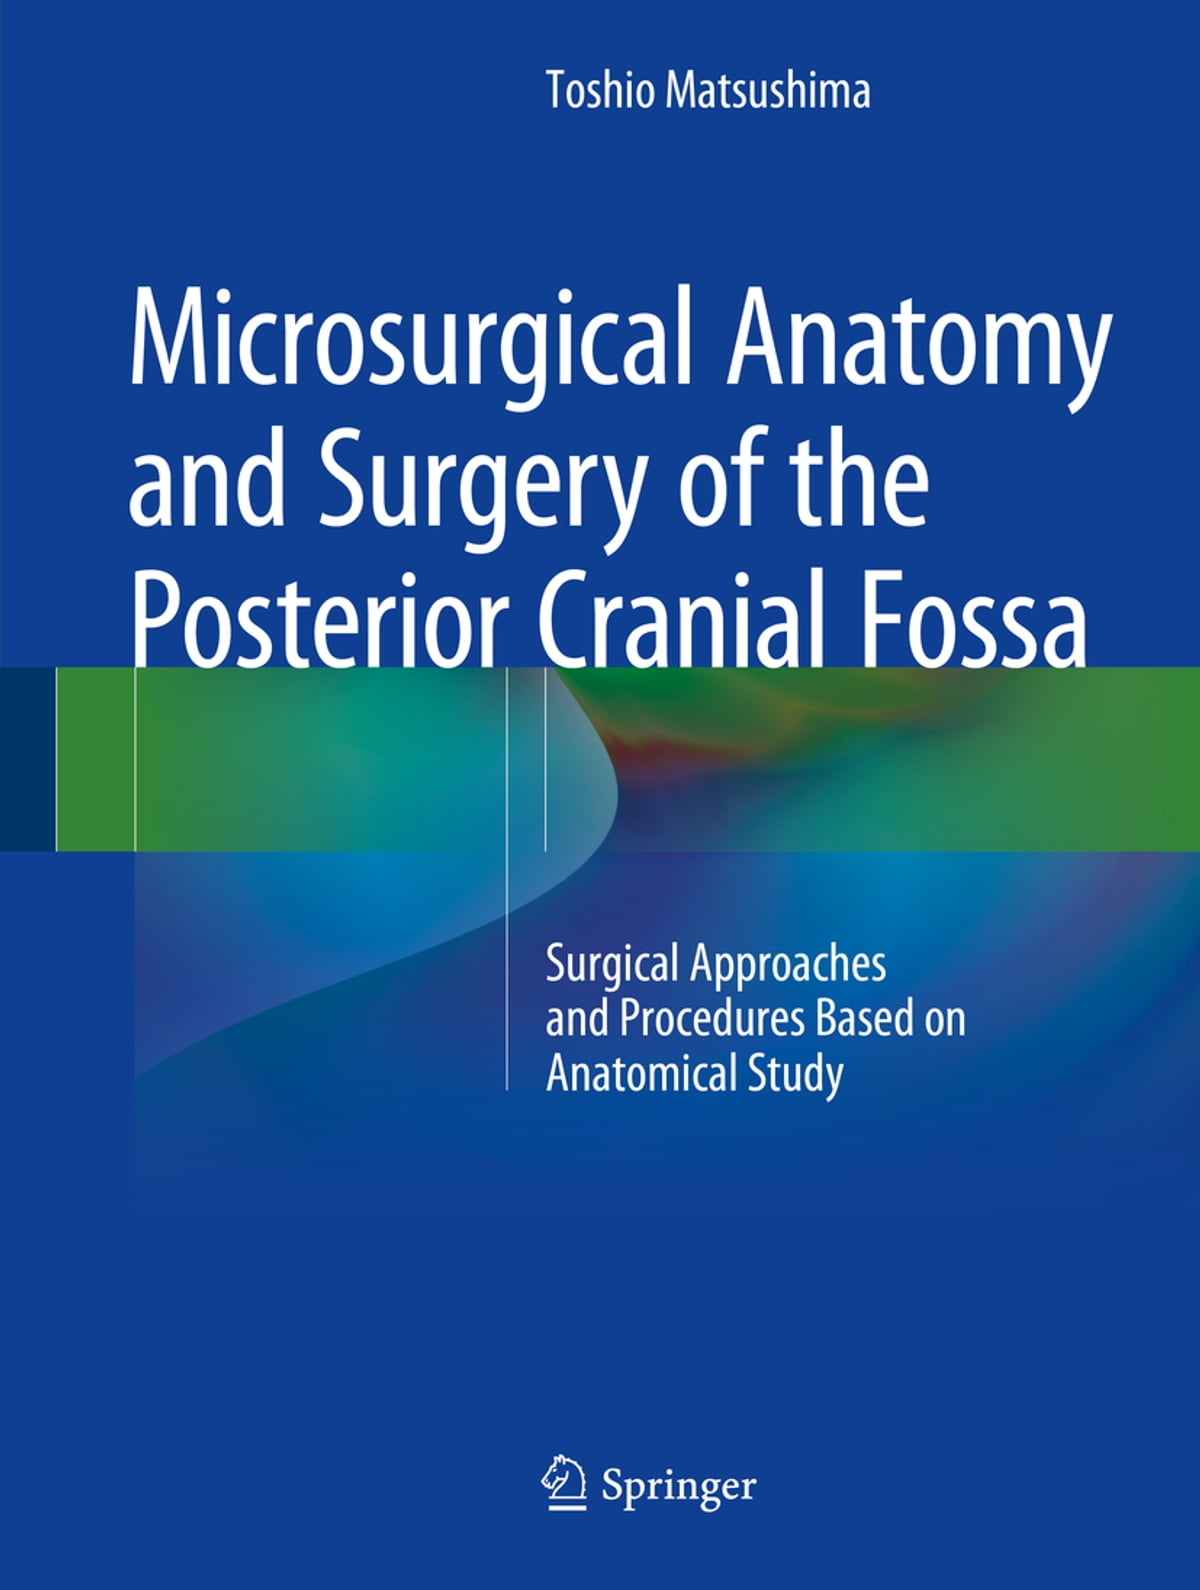 Microsurgical Anatomy and Surgery of the Posterior Cranial Fossa ...